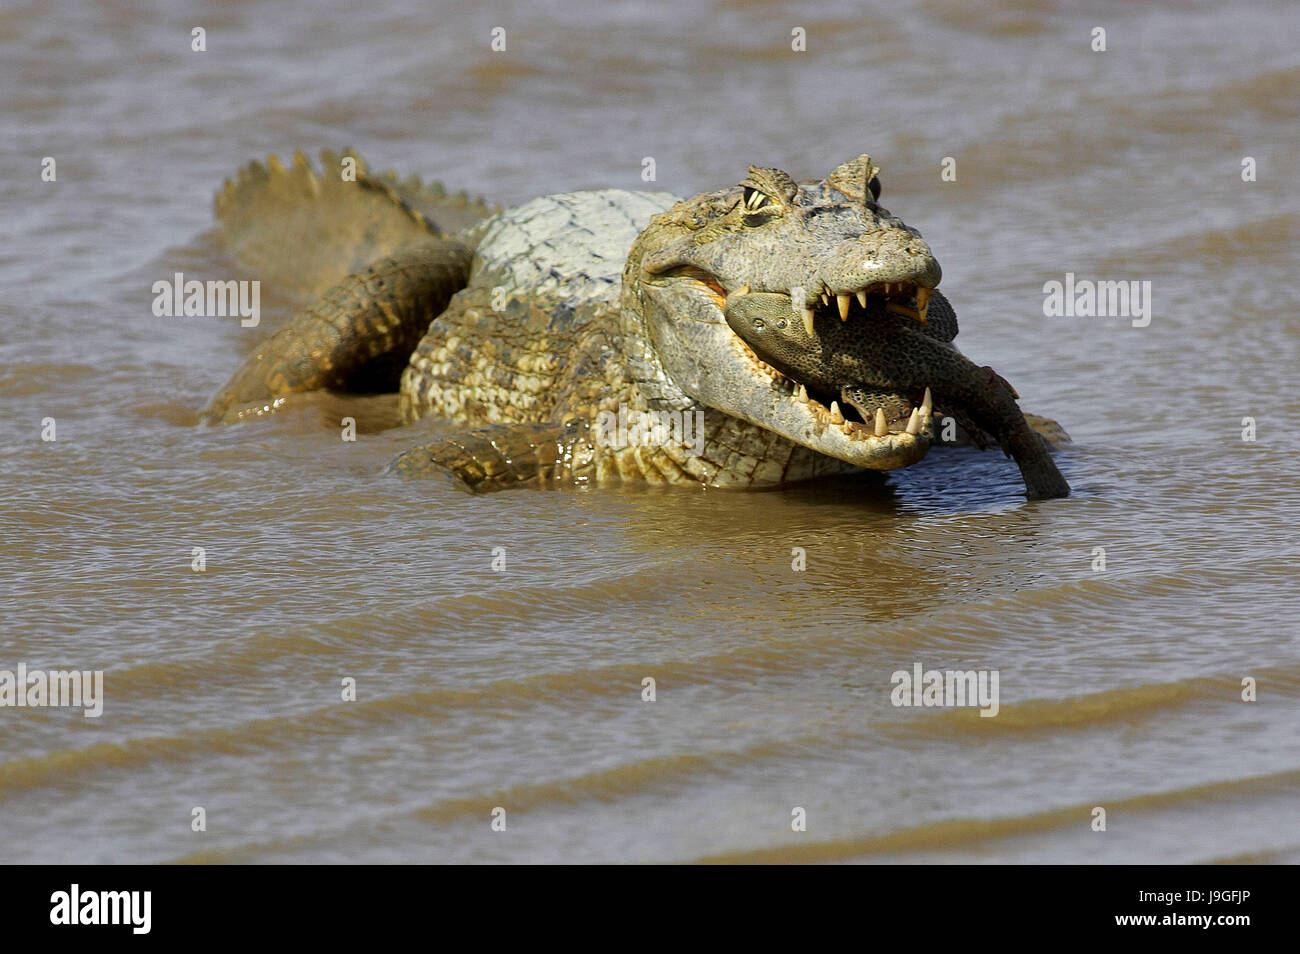 Spectacled Caiman, caiman crocodilus, Catching Fish in River, Los Lianos in Venezuela - Stock Image